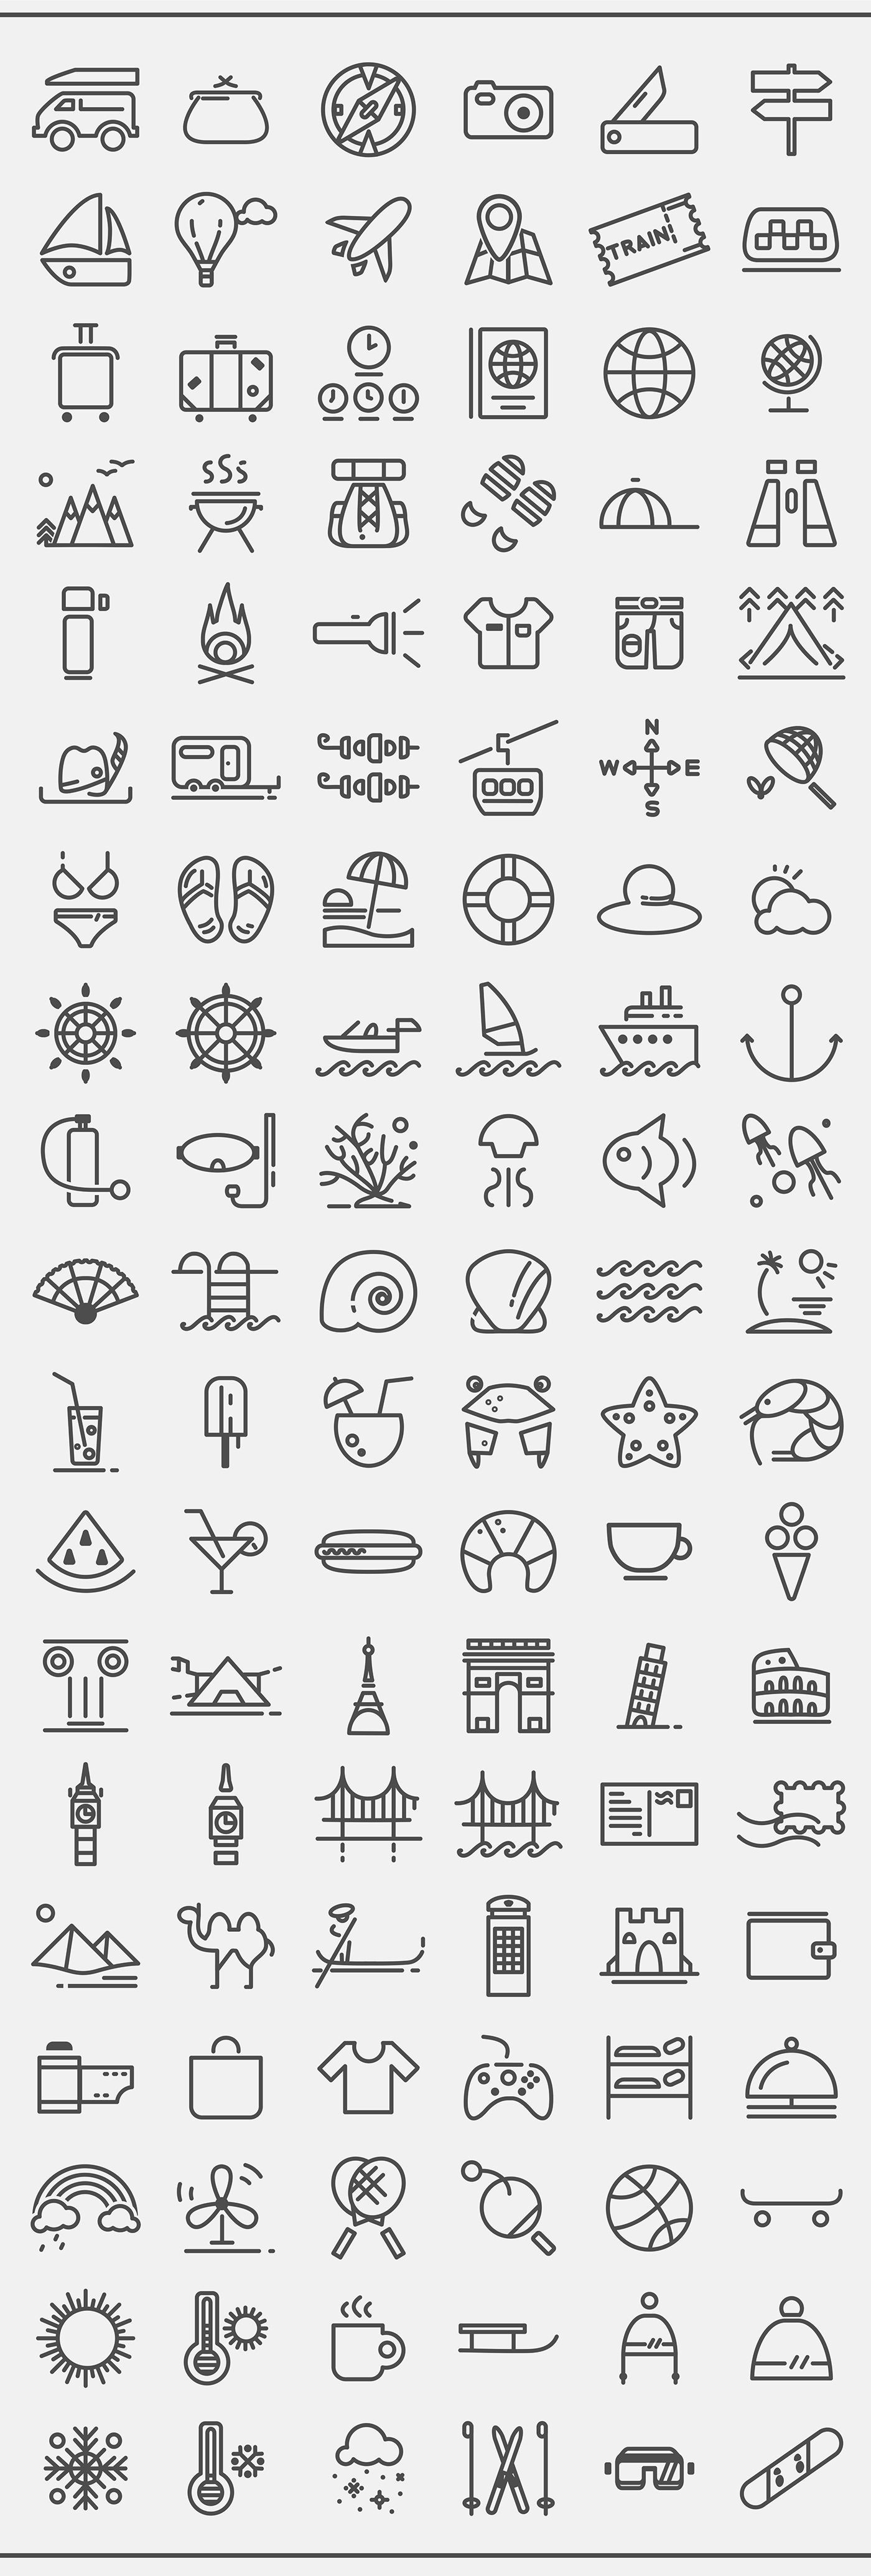 Download: Travelling Icon Set Icons make the world go round. Literally. These days you can pretty much do anything with just your cell phone and a few familiar icons. Shop, get directions, play music, you name it. Whether you're building a mobile app or a simple user interface for your website, icons are a necessity. Get for fr